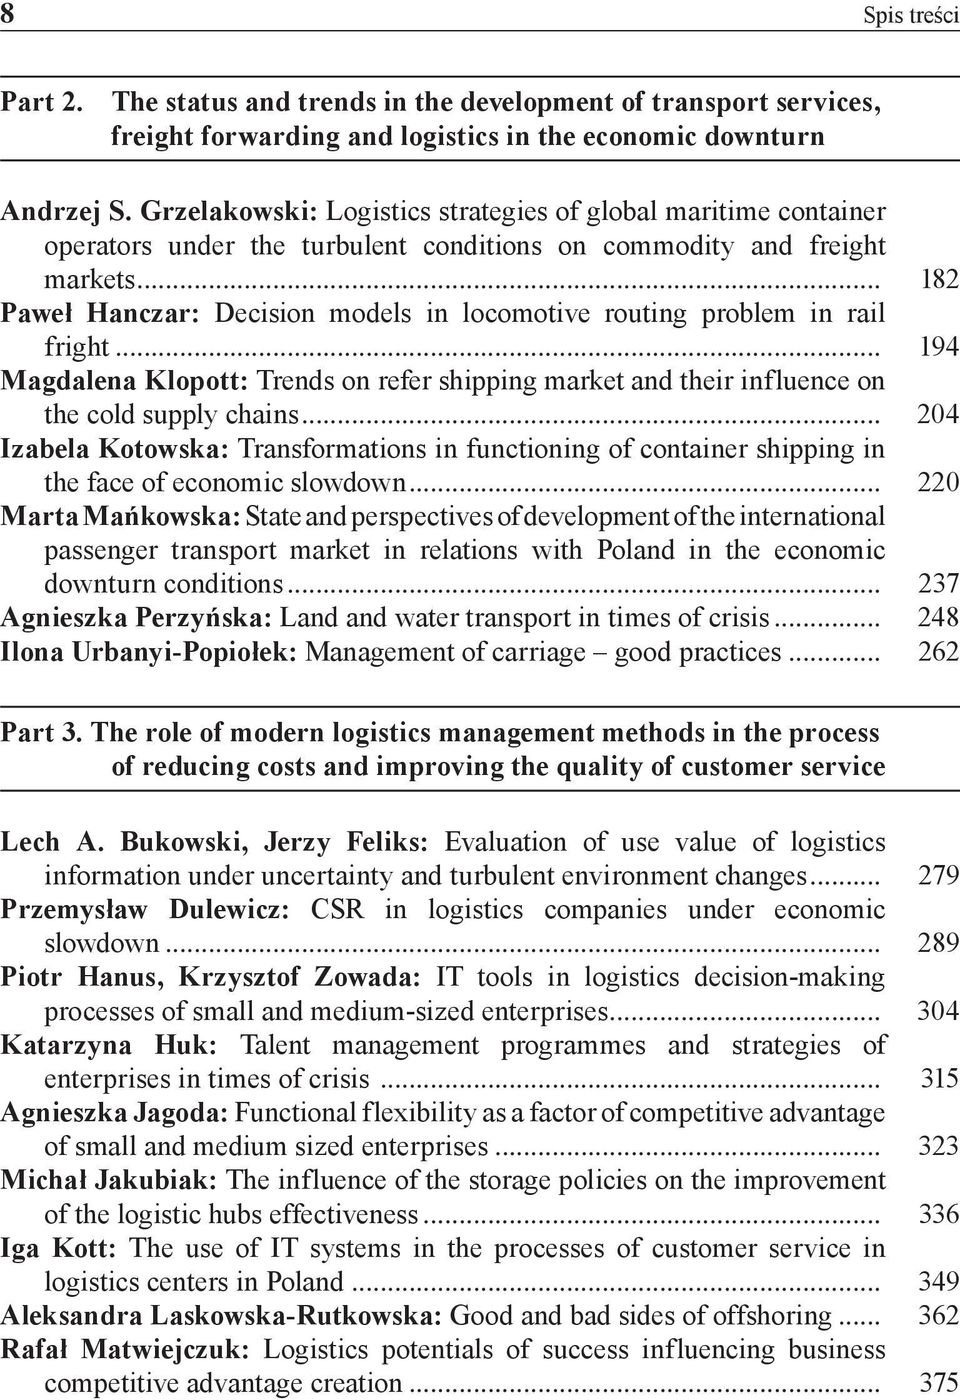 .. 182 Paweł Hanczar: Decision models in locomotive routing problem in rail fright... 194 Magdalena Klopott: Trends on refer shipping market and their influence on the cold supply chains.